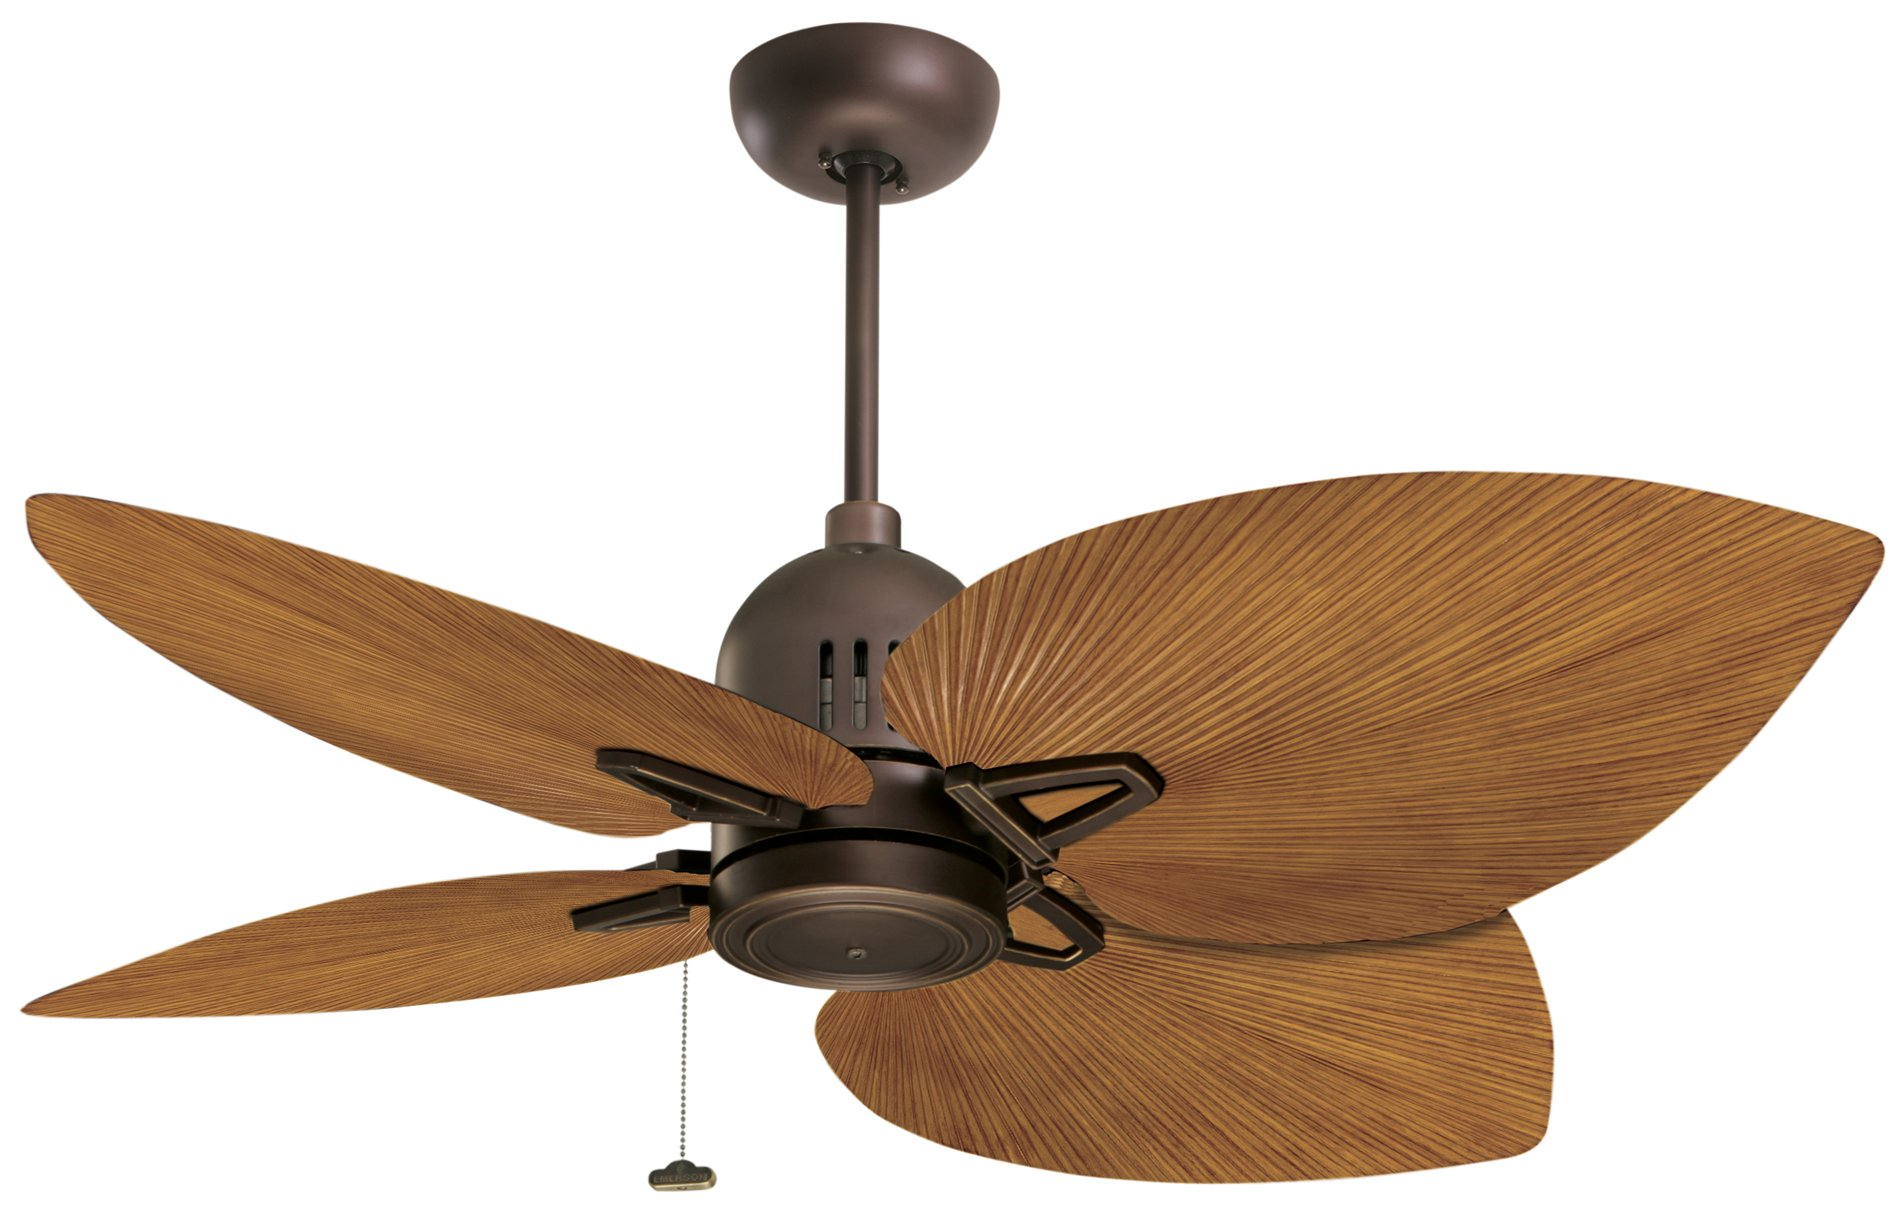 Emerson B83pcn 22 Quot All Weather Palm Leaf Ceiling Fan